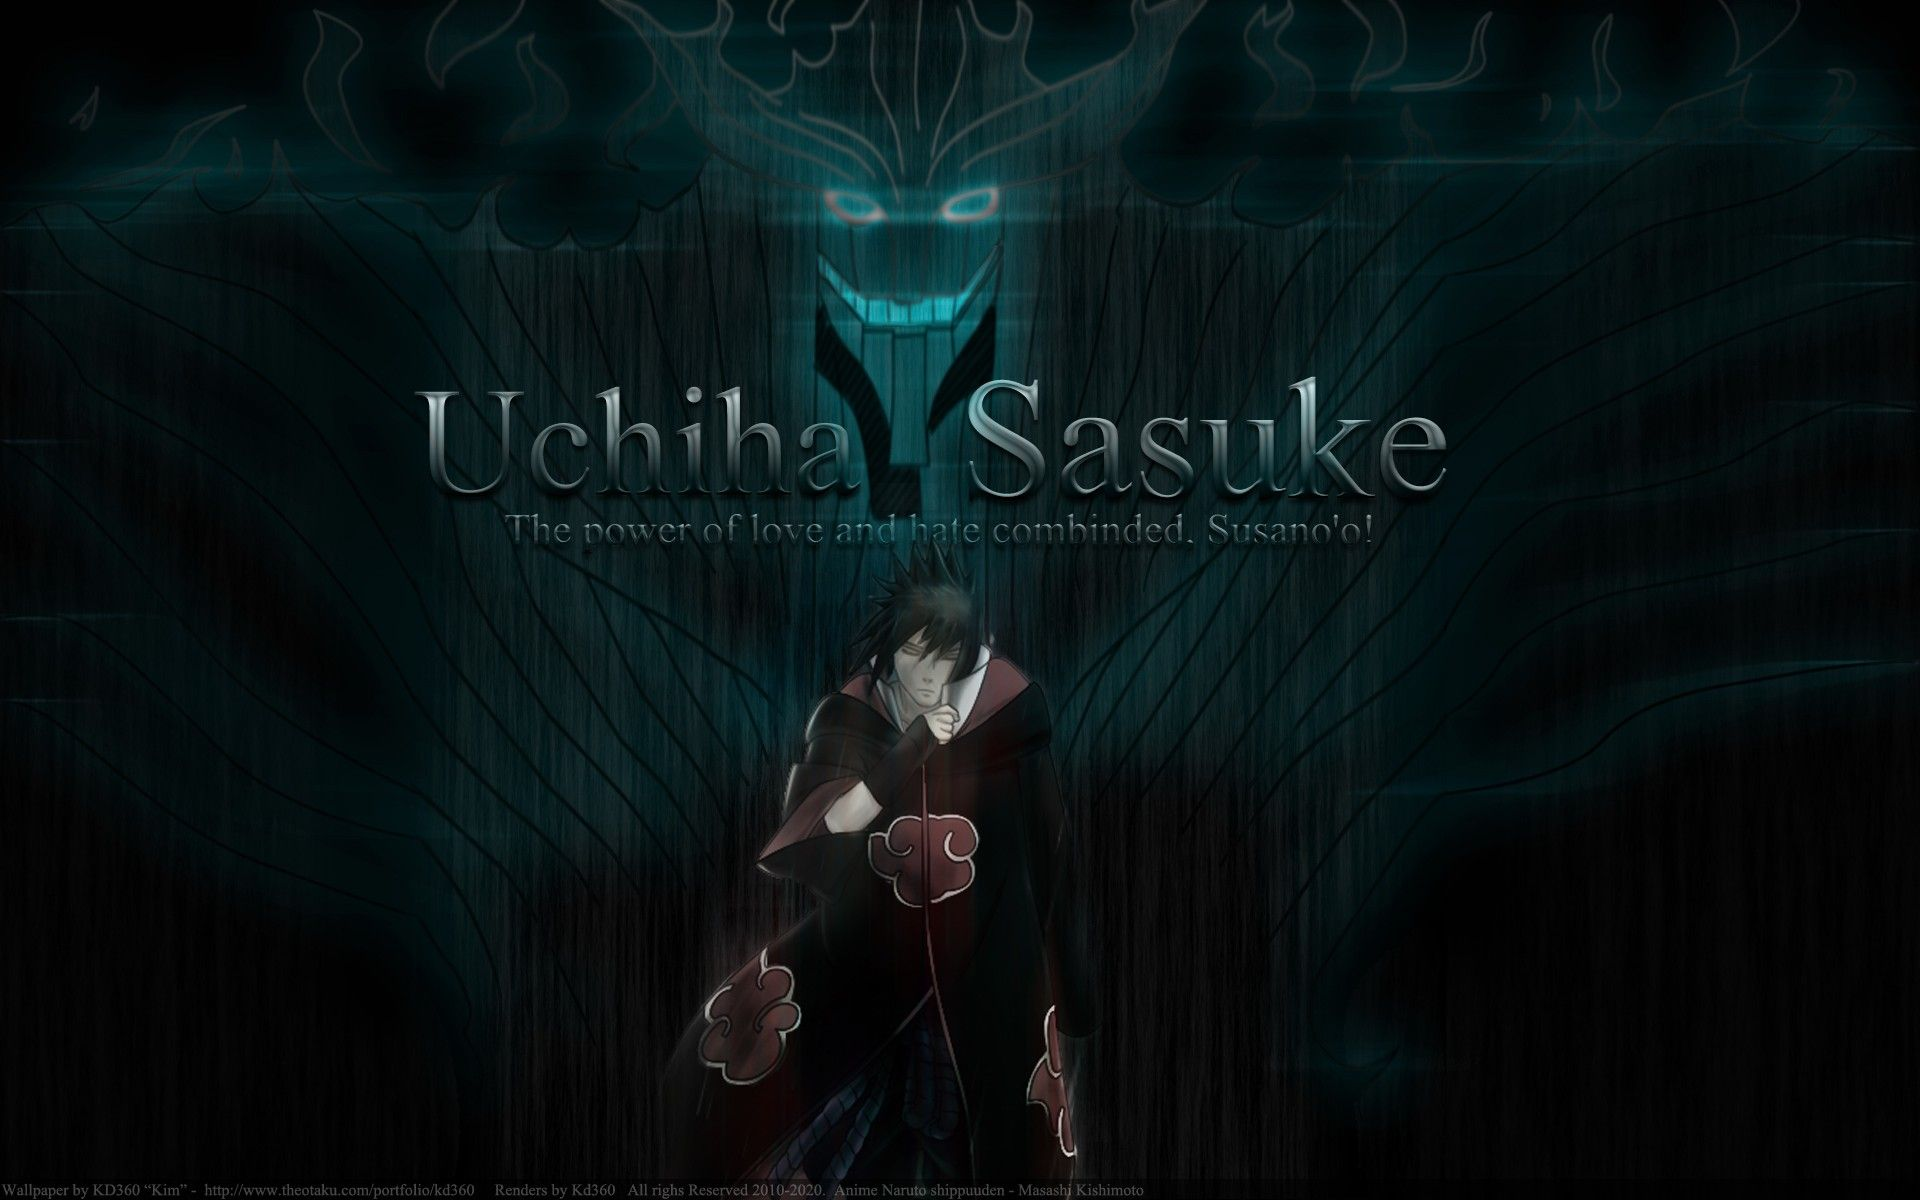 Uchiha Sasuke Wallpapers Shippuden - Wallpaper Cave